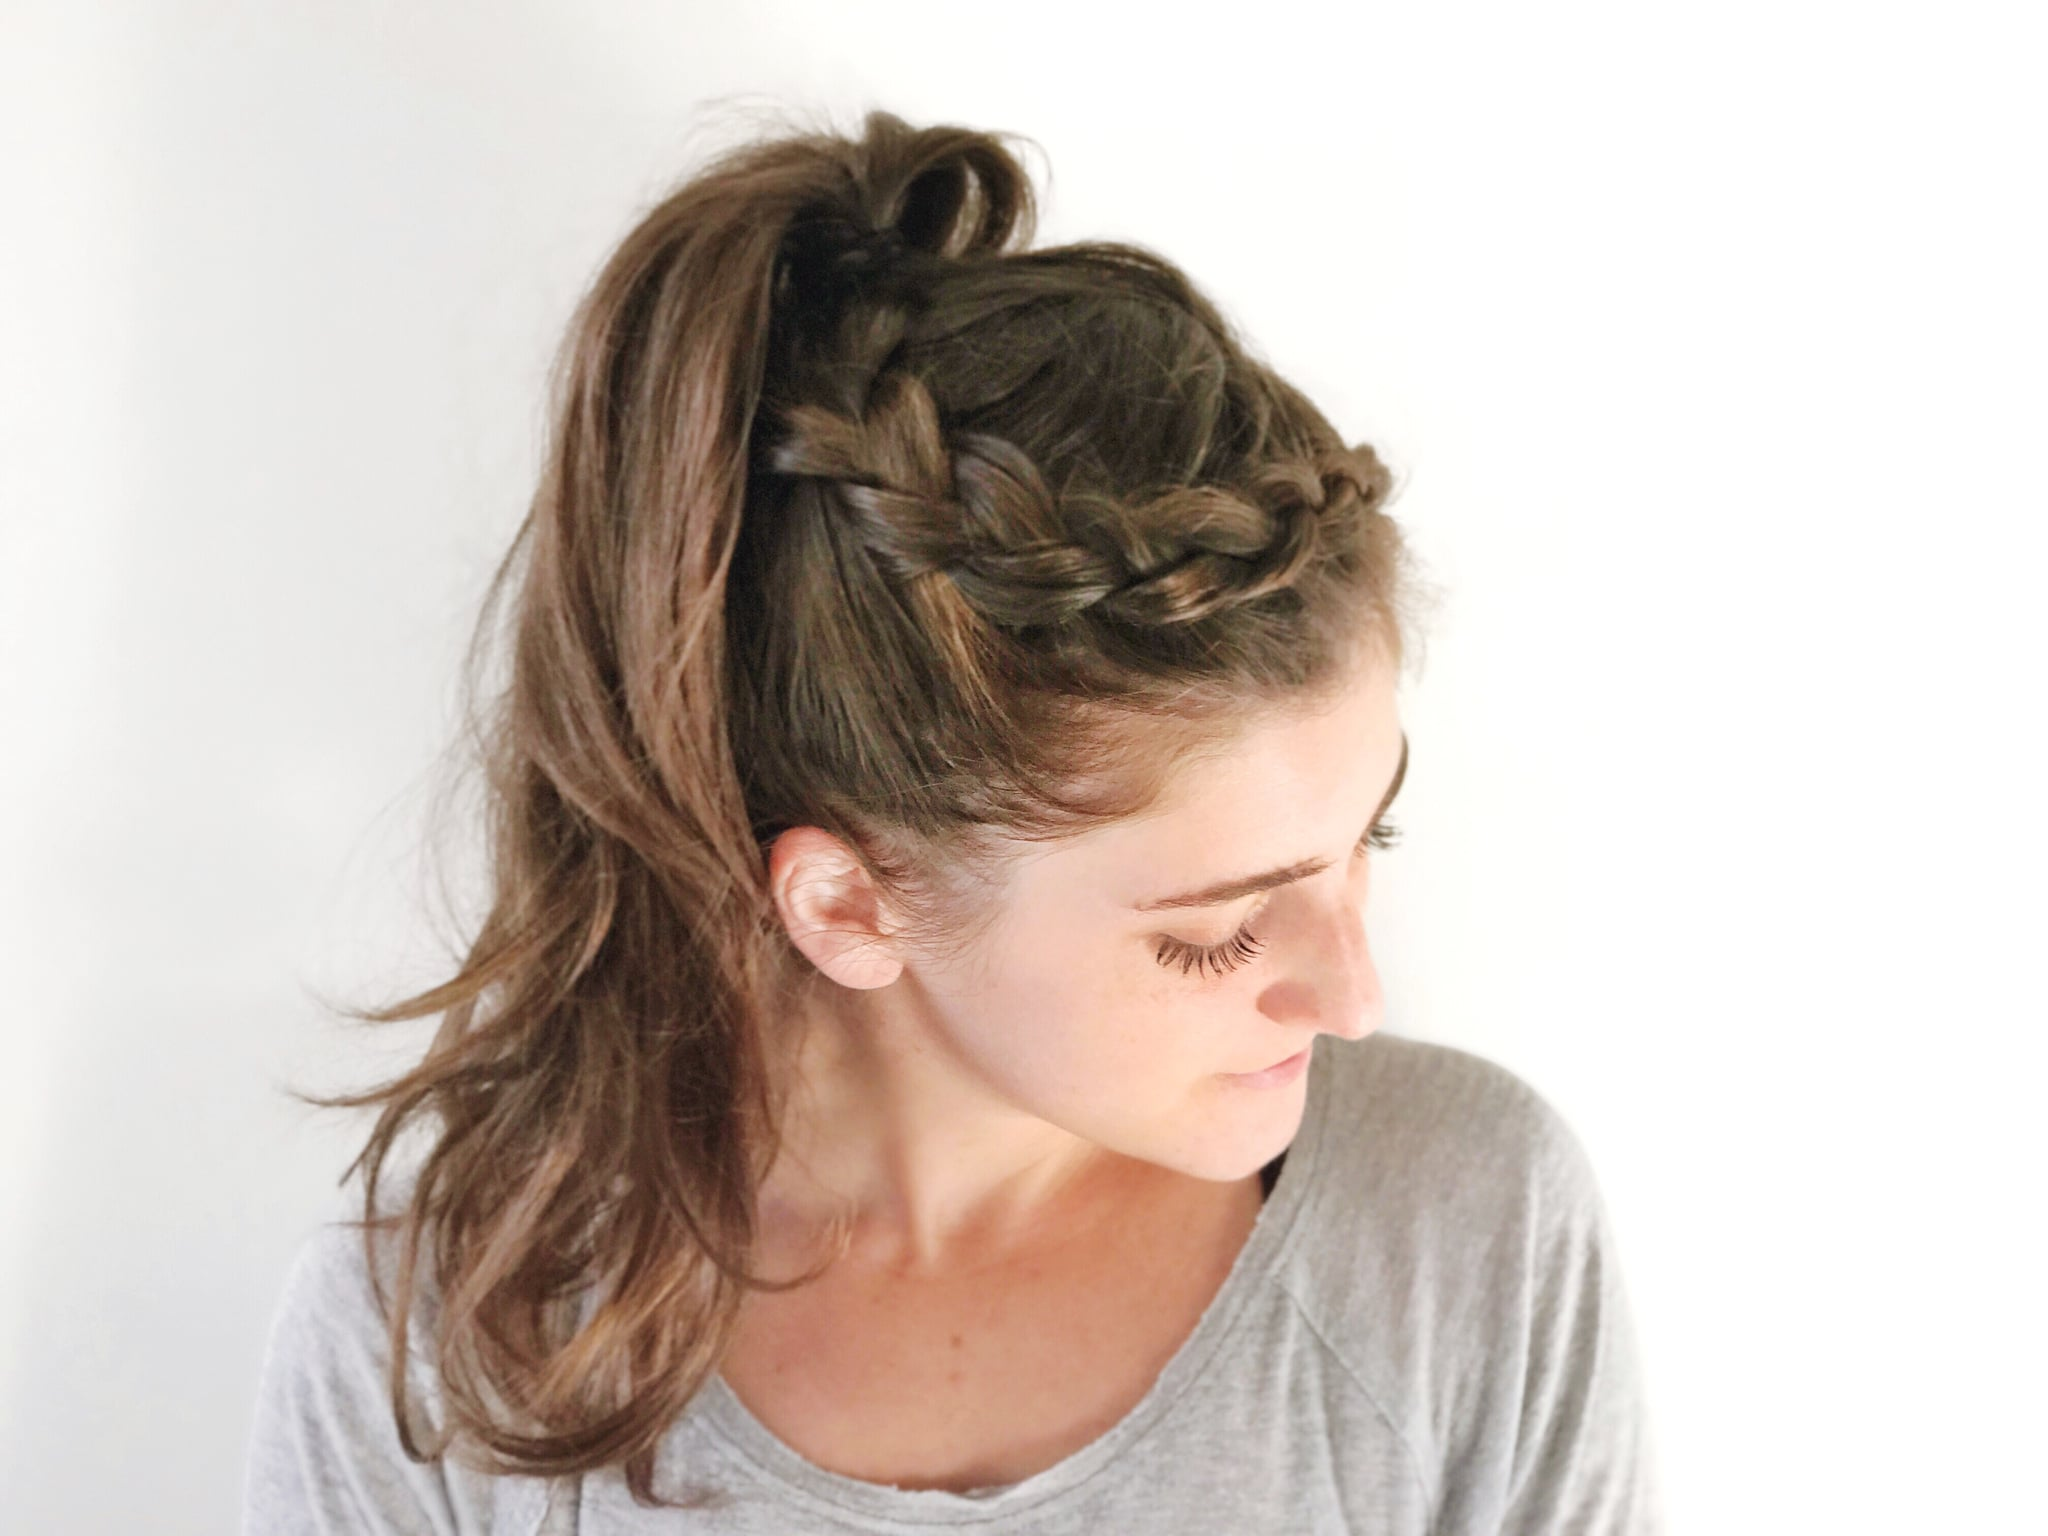 Hair Styles With Braids: Easy Braid Hairstyle For The Gym